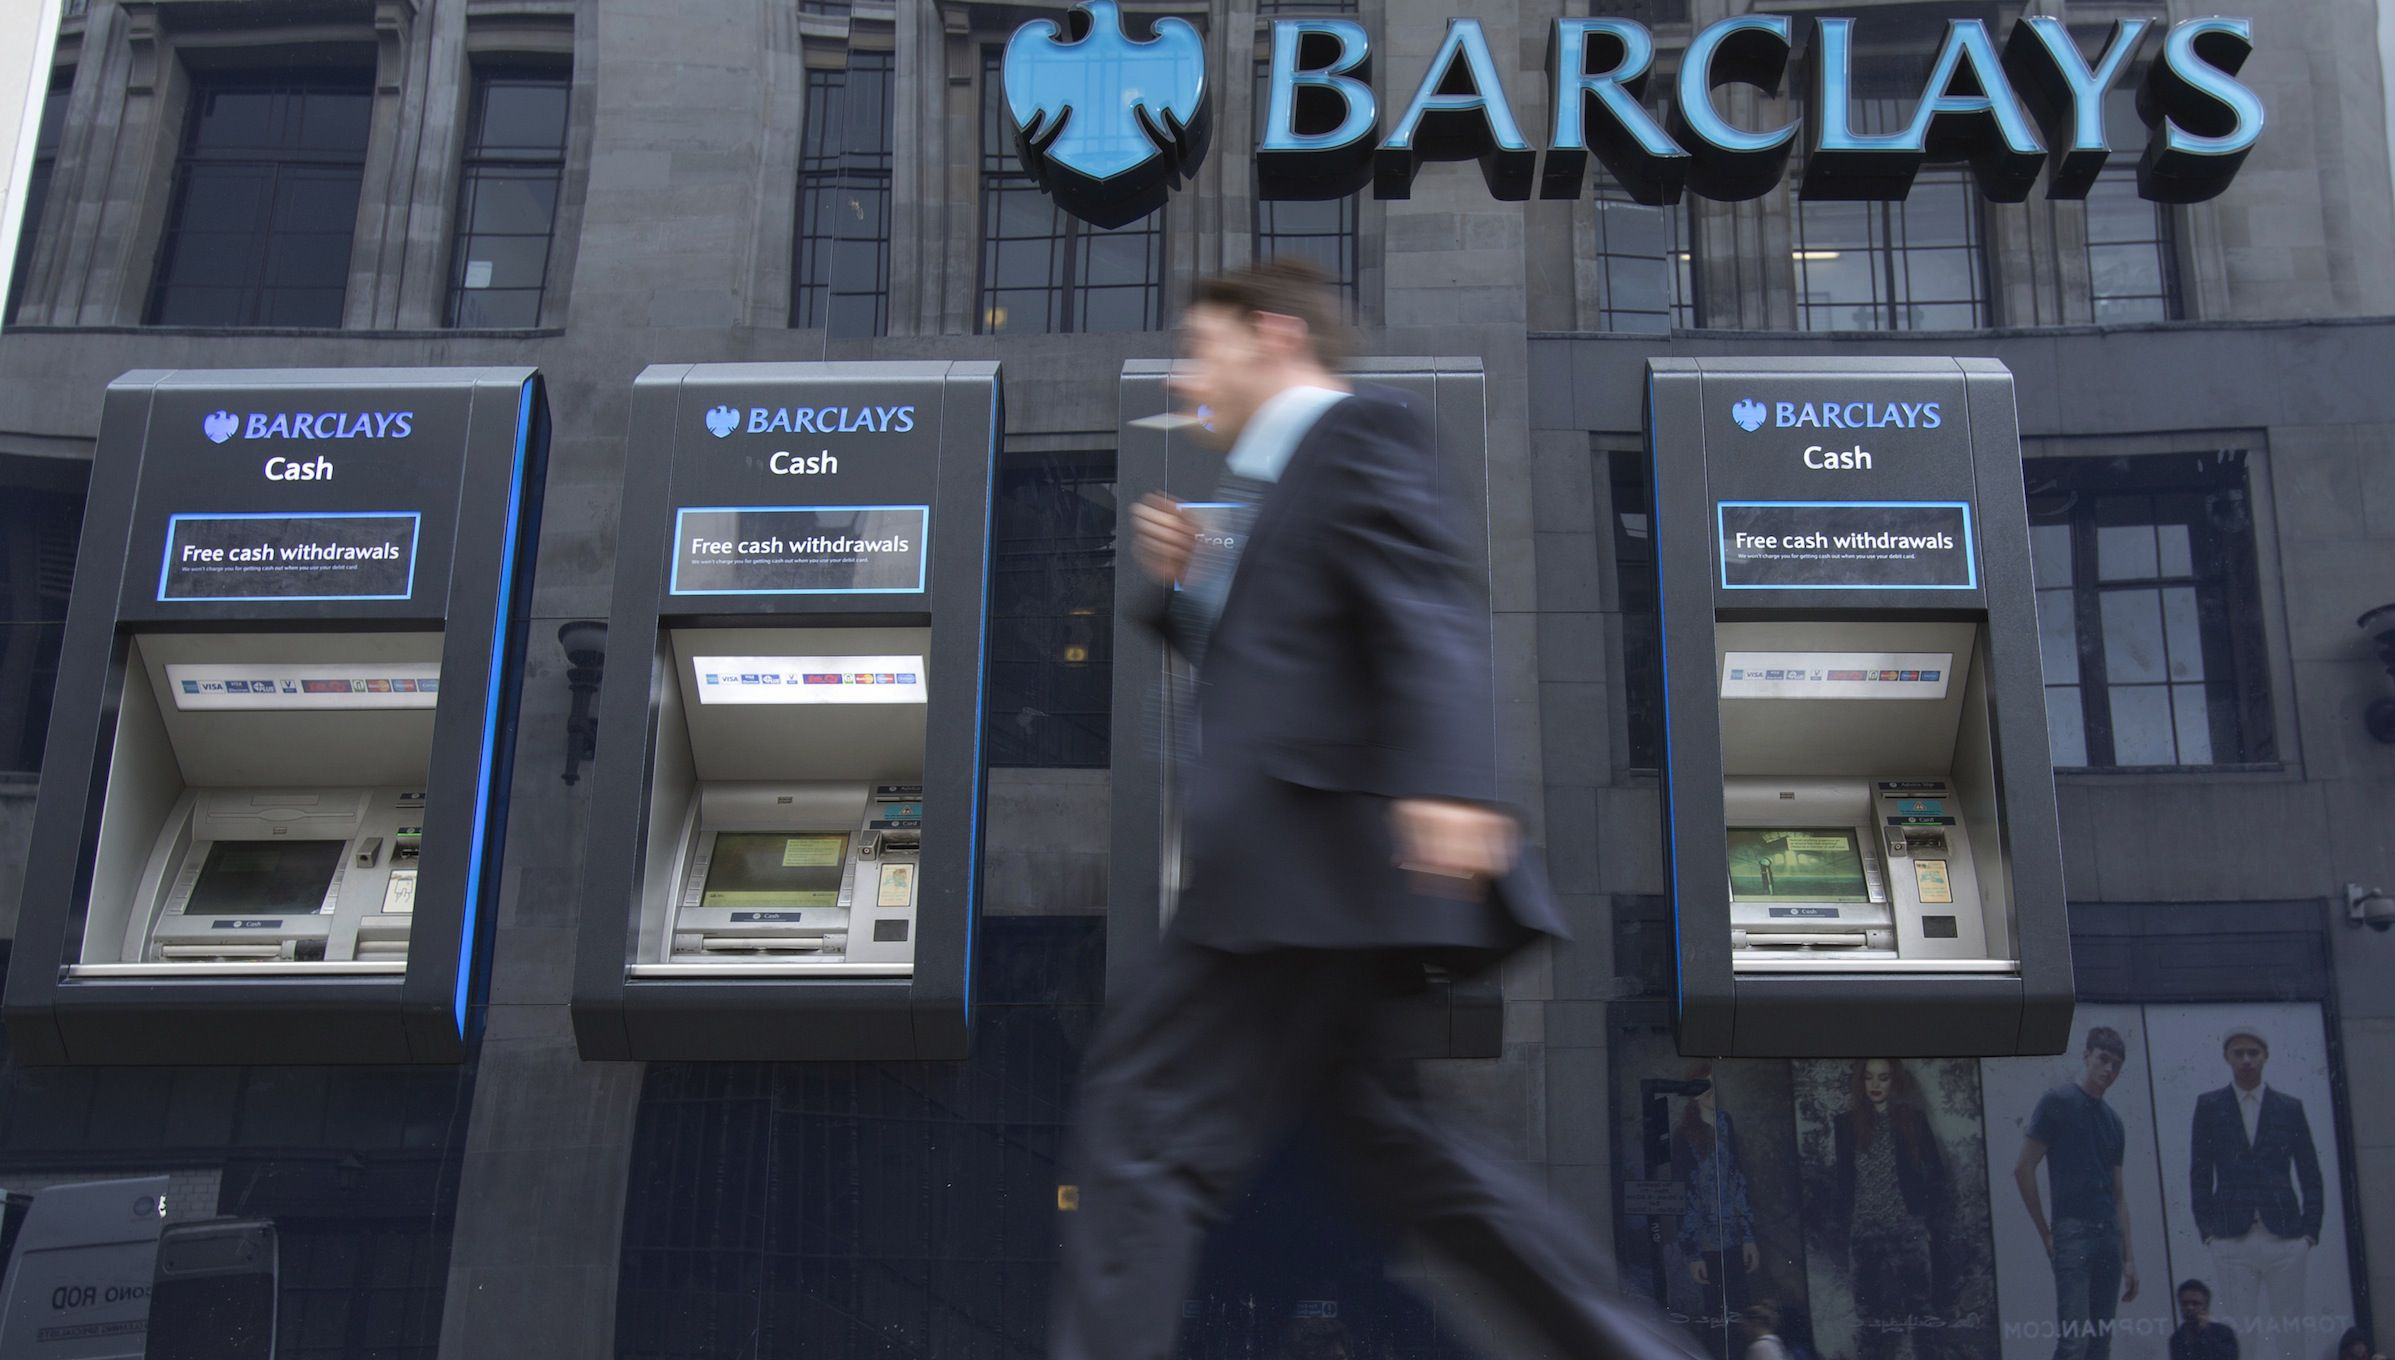 Barclays ATMs in Europe